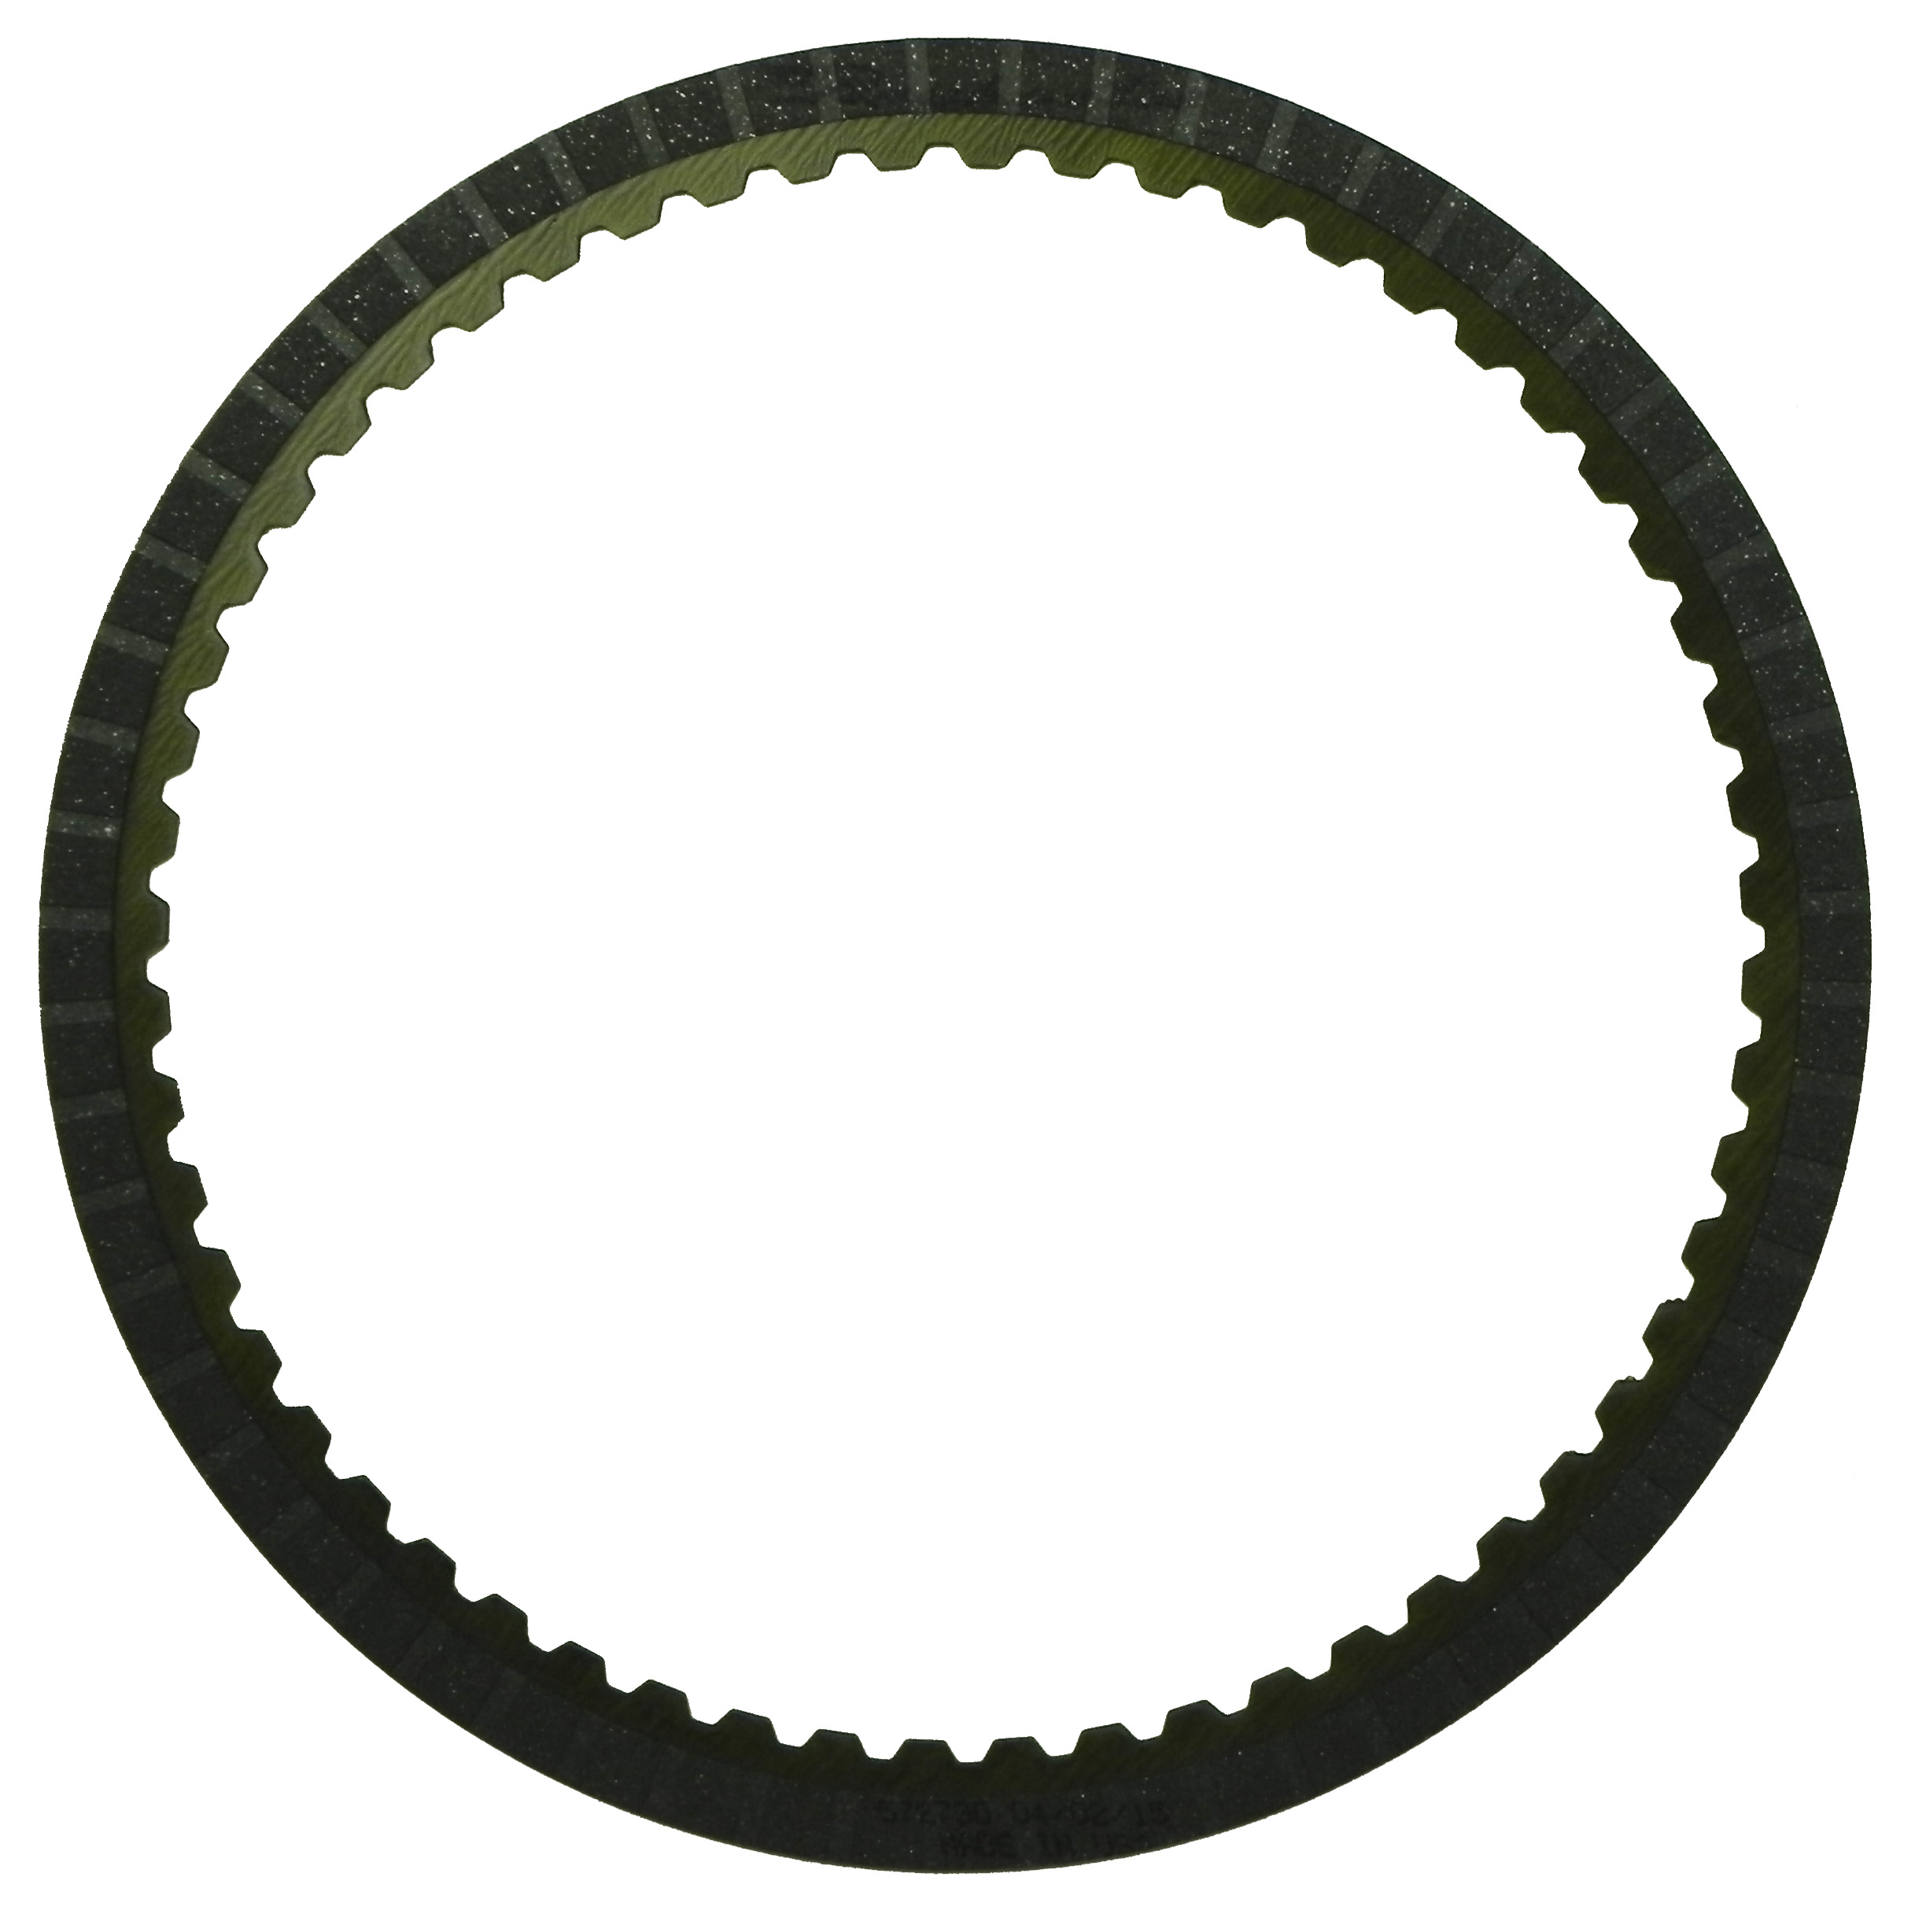 R572730 | 2004-ON Friction Clutch Plate High Energy K1 09G High Energy